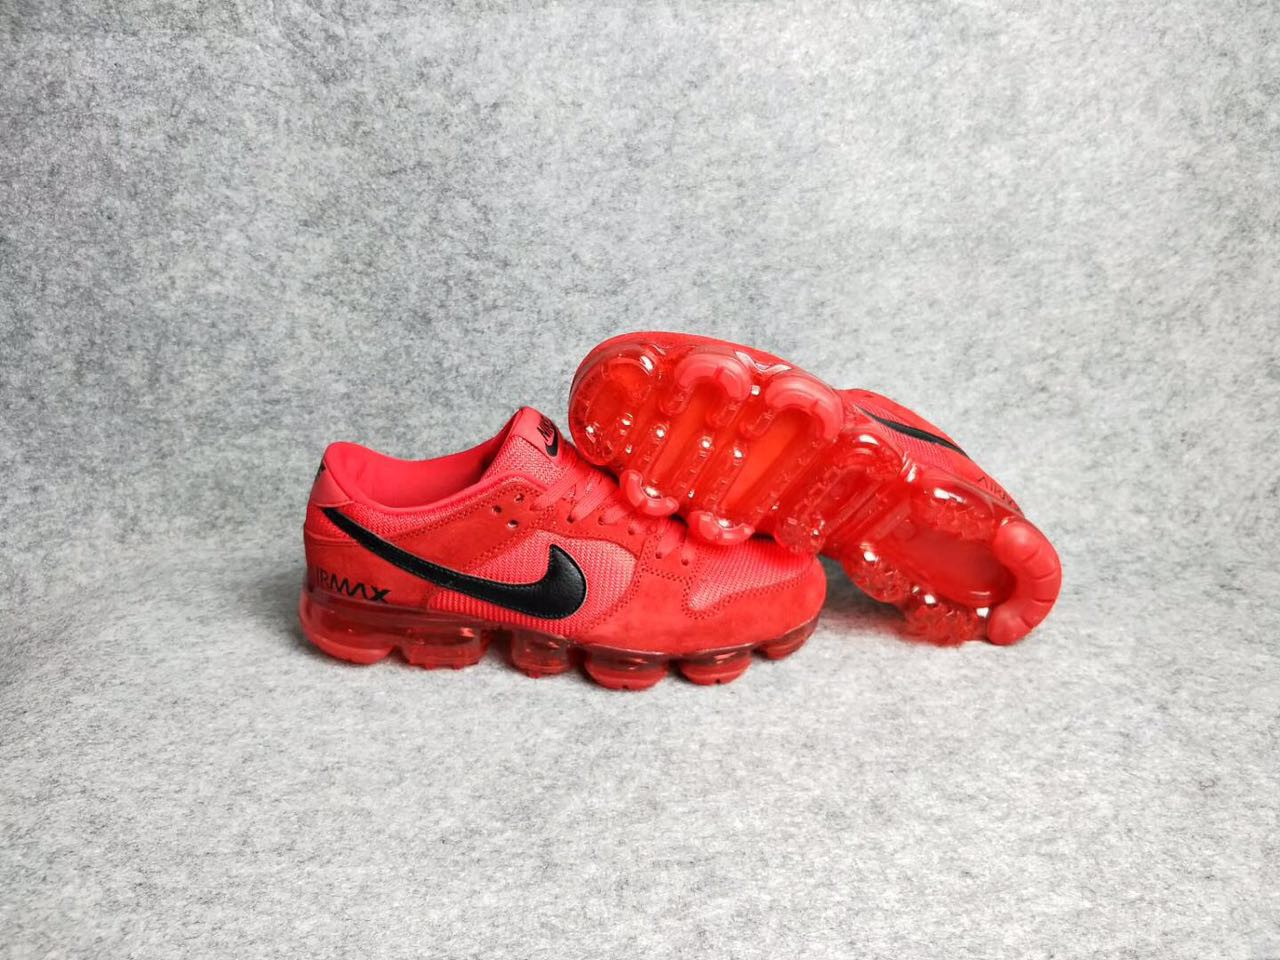 Nike Air MAX 2018 Red Black Shoes